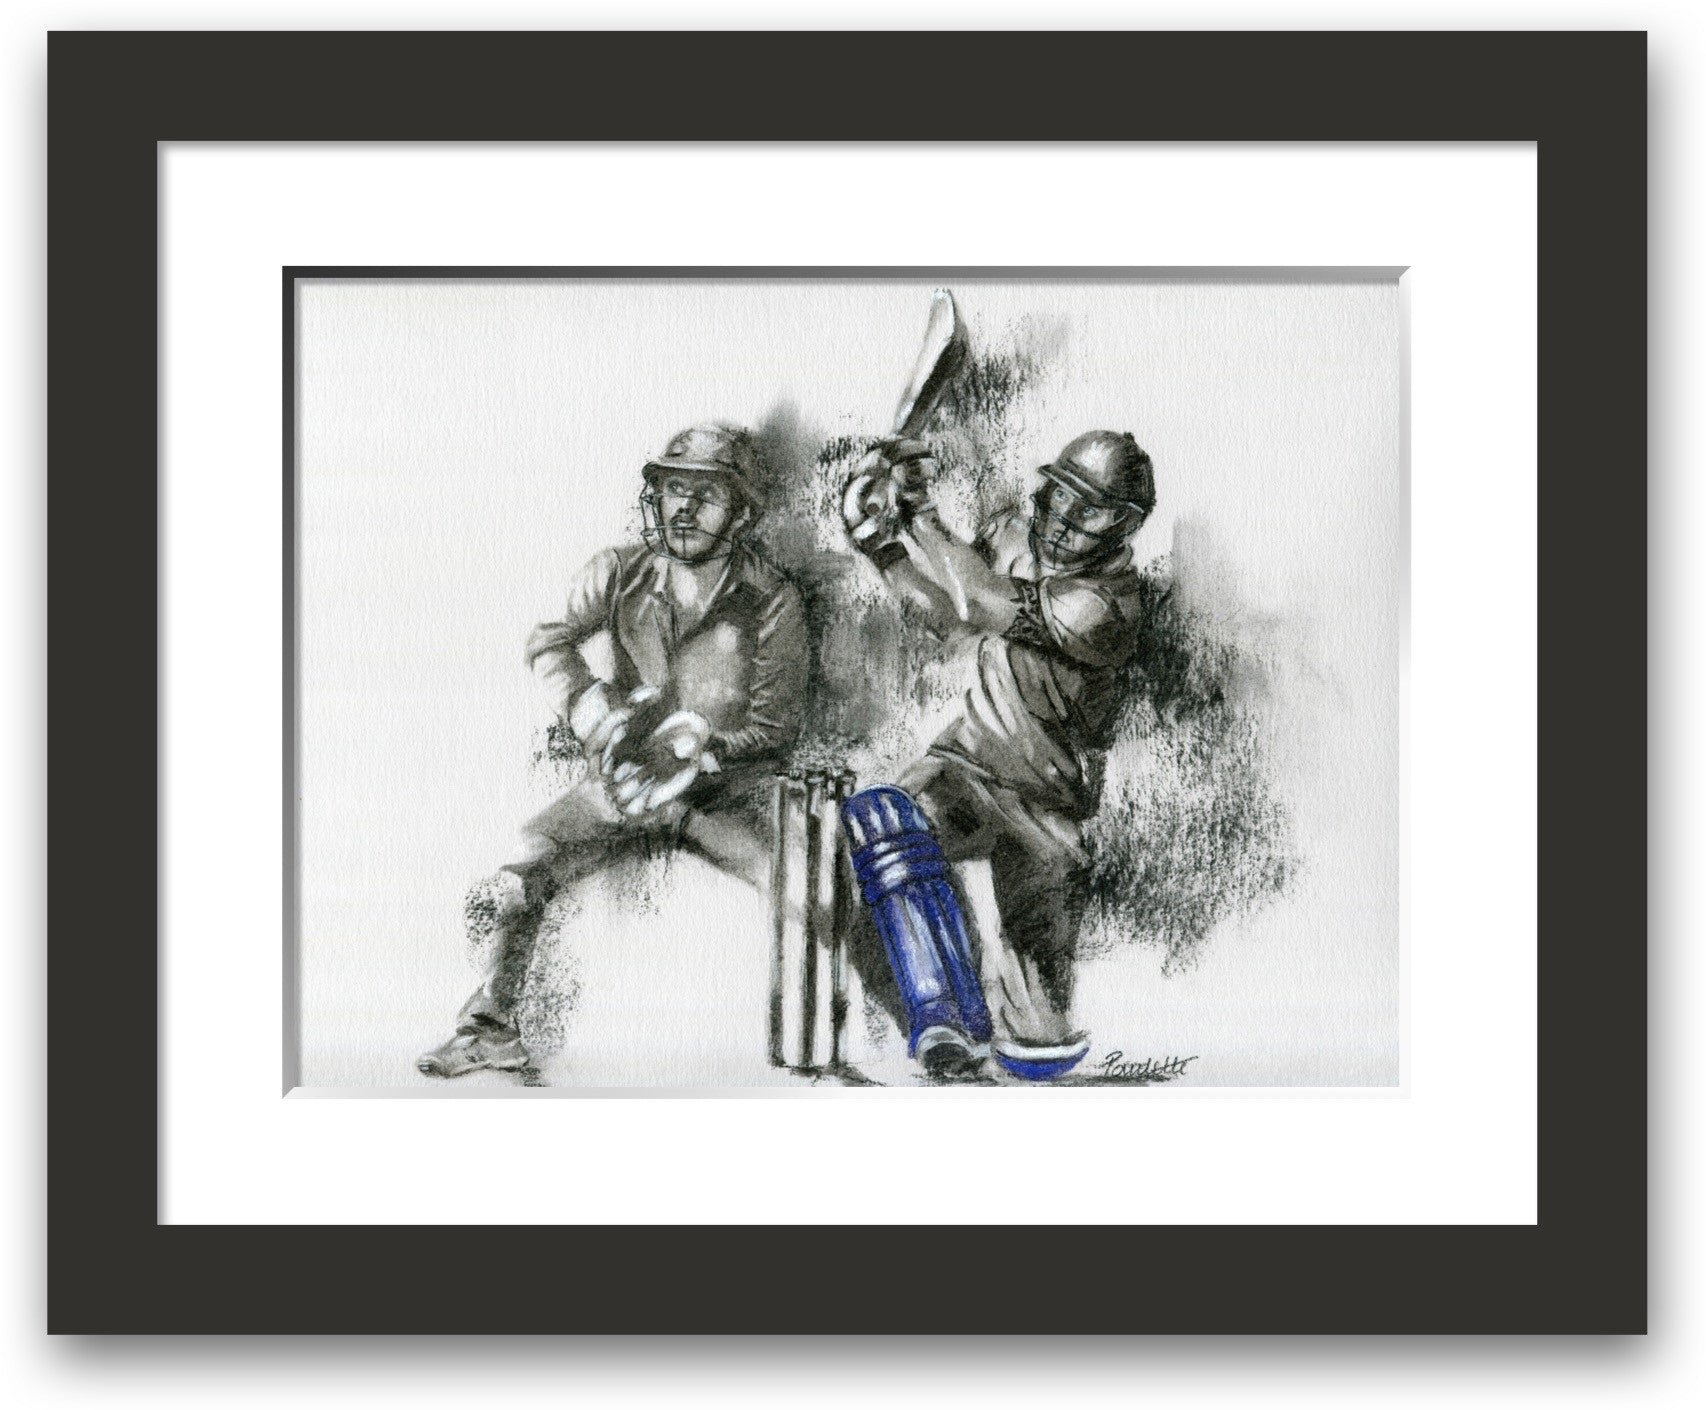 framed and mounted drawing of a batsman hitting a six in a t20 match by cricket artist